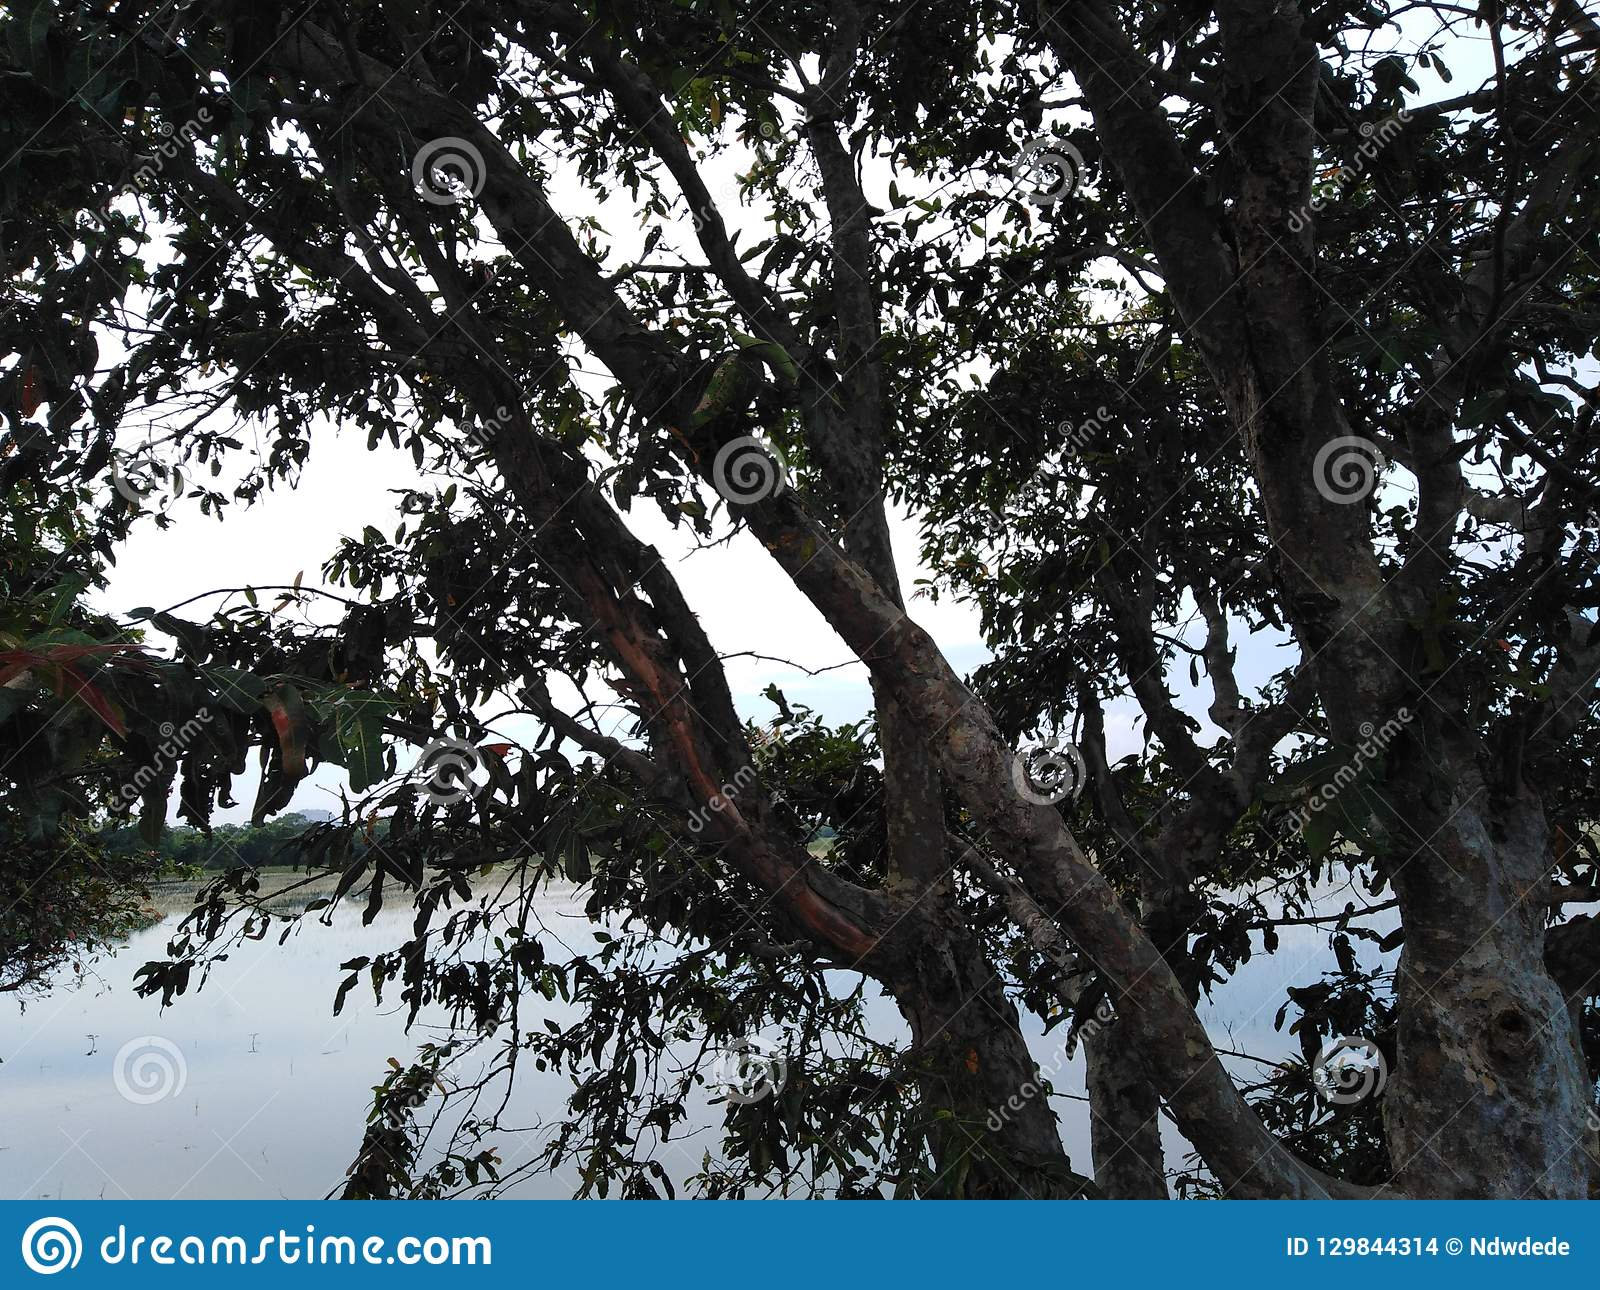 A huge tree in front of a lake dark leaves